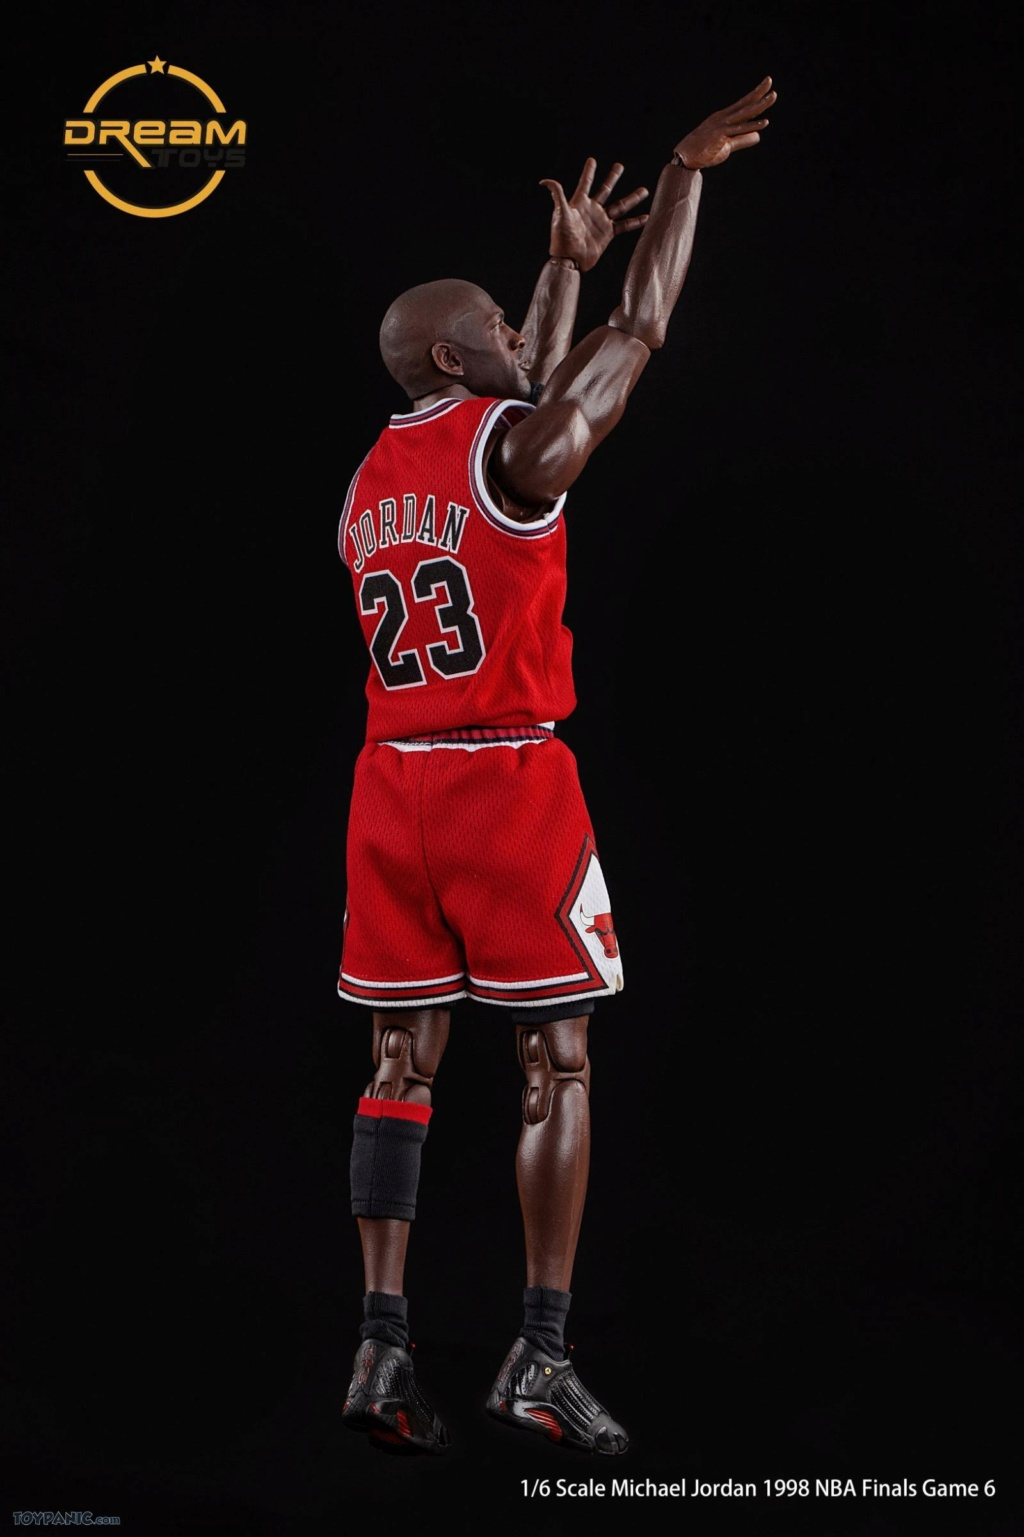 athlete - NEW PRODUCT: DreamToys: NBA Finals Jordan, Bryant, & James 1/6 scale action figures 11420215